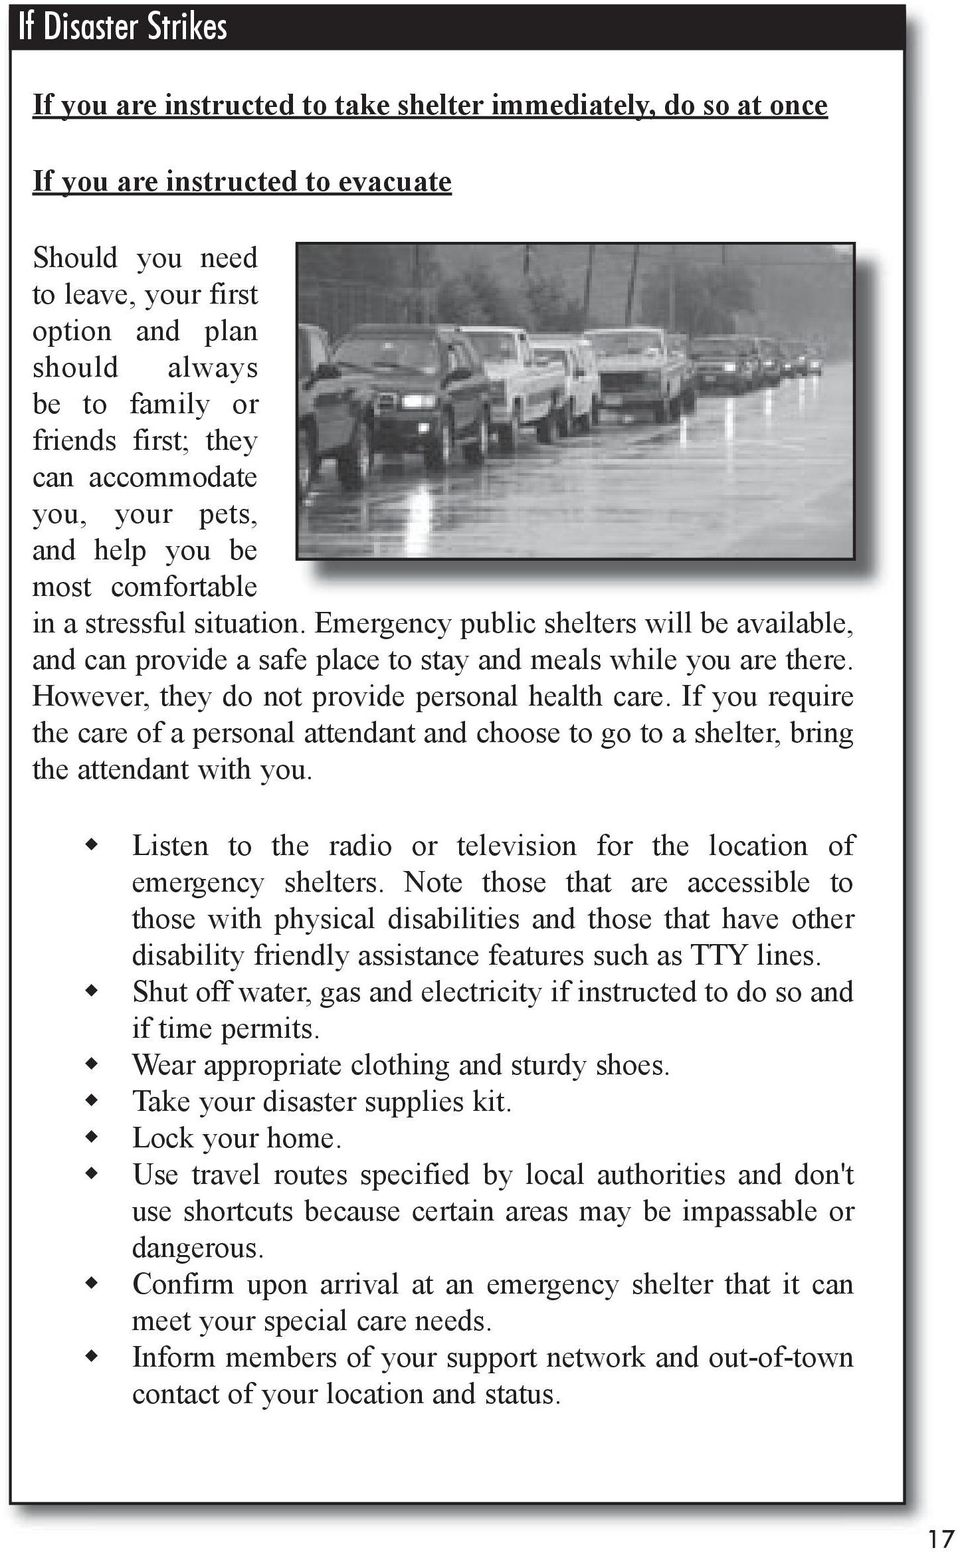 Emergency public shelters will be available, and can provide a safe place to stay and meals while you are there. However, they do not provide personal health care.